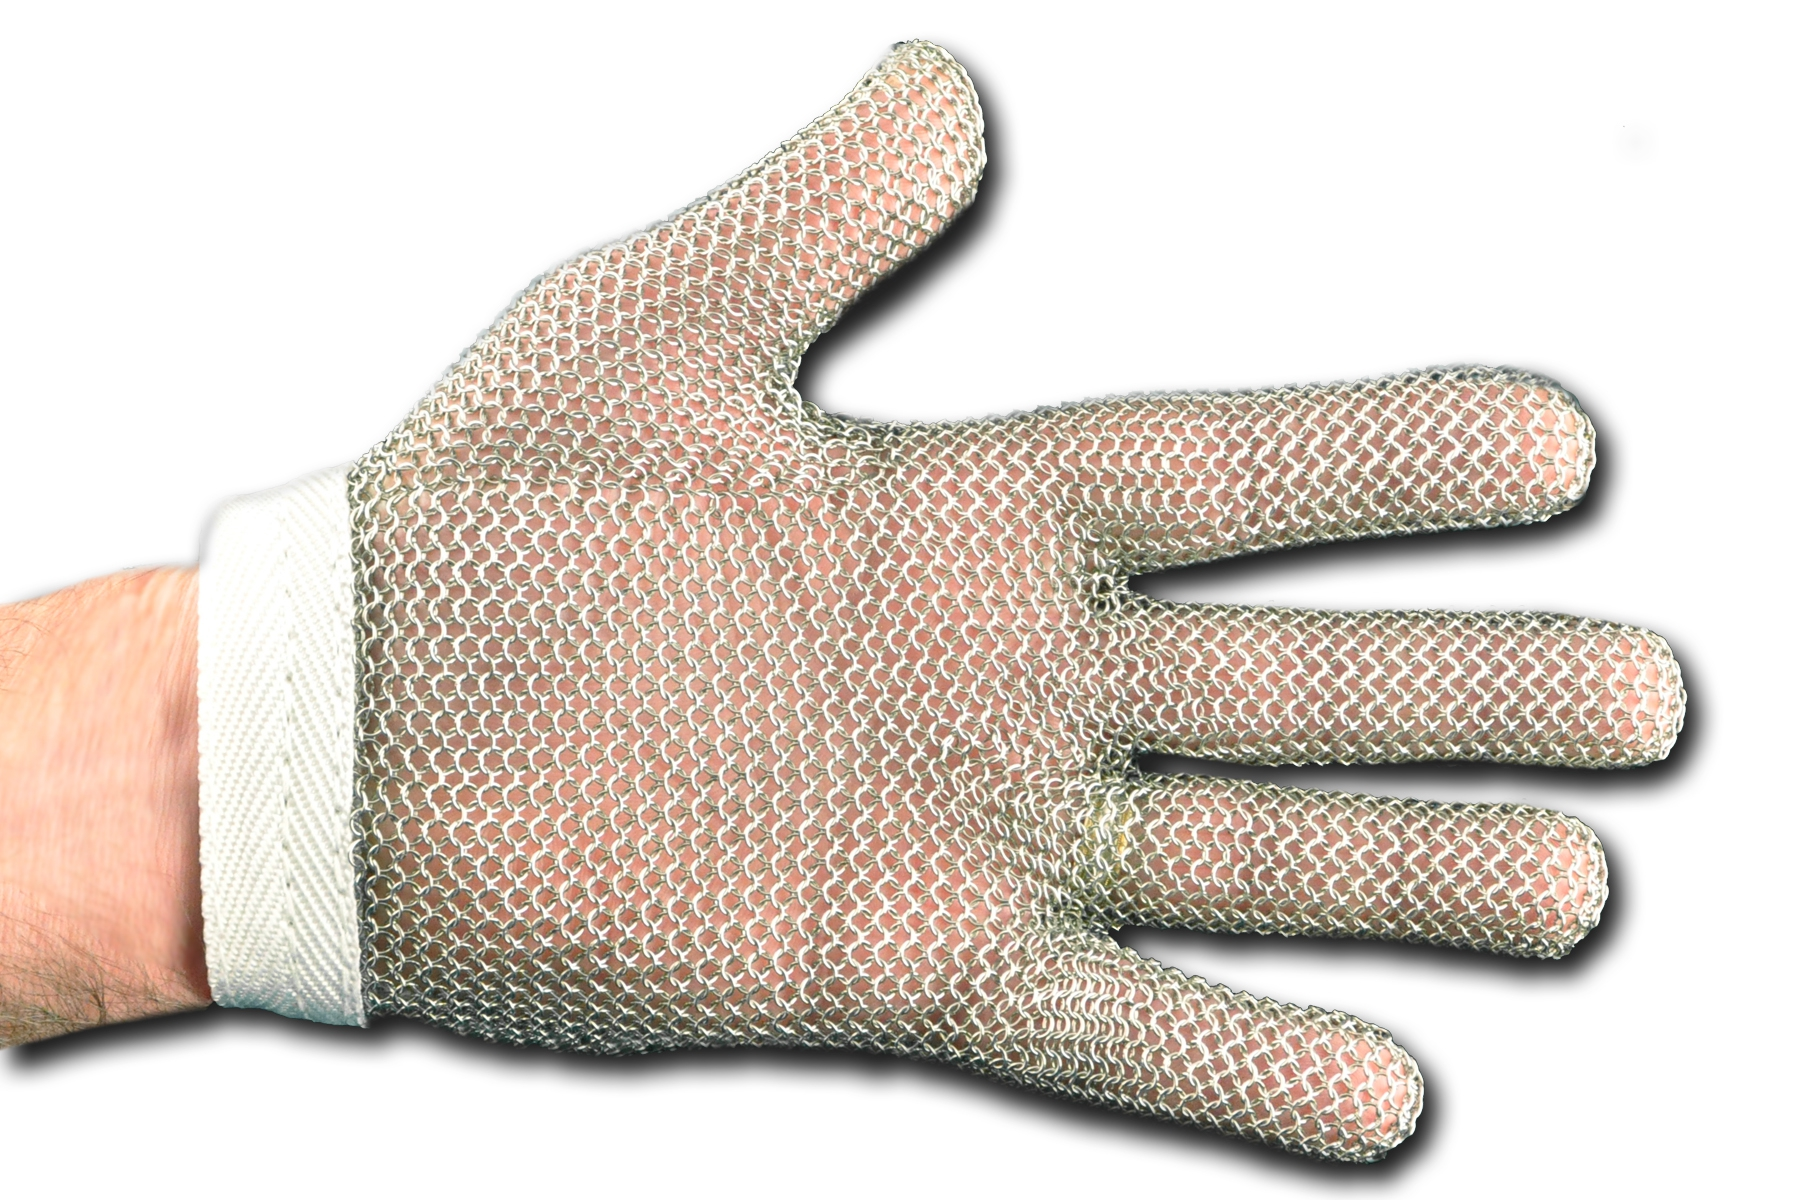 Dexter Russell 82063 protective gloves